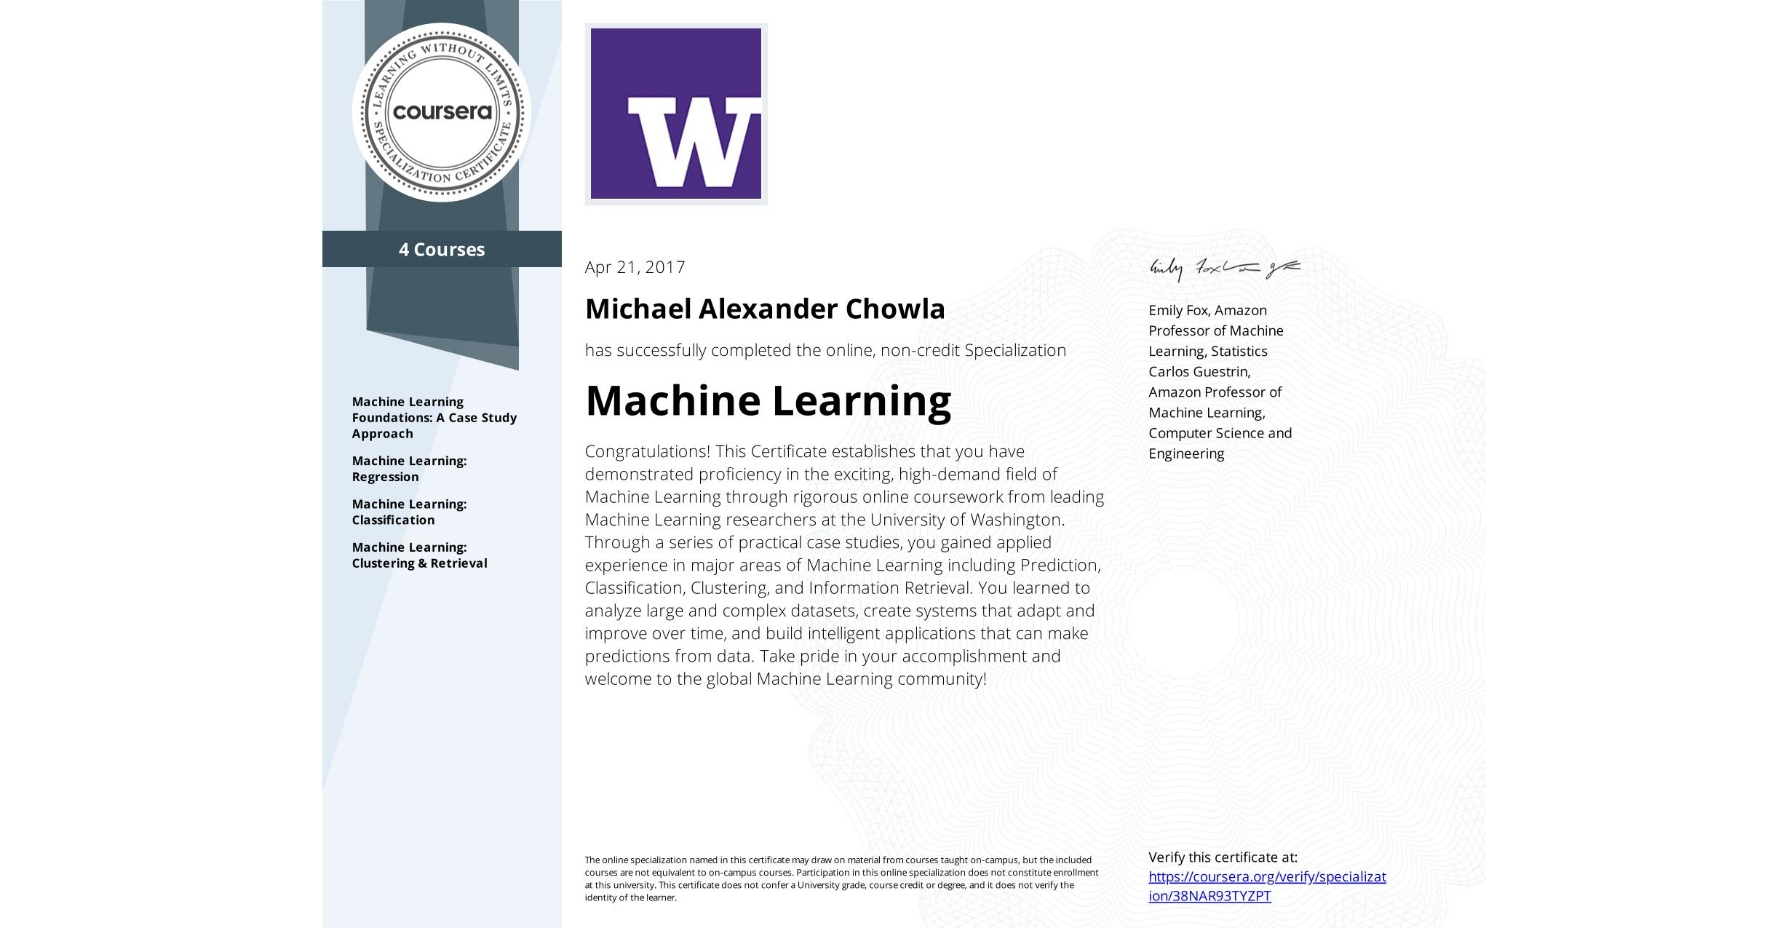 View certificate for Michael Alexander Chowla, Machine Learning, offered through Coursera. Congratulations! This Certificate establishes that you have demonstrated proficiency in the exciting, high-demand field of Machine Learning through rigorous online coursework from leading Machine Learning researchers at the University of Washington. Through a series of practical case studies, you gained applied experience in major areas of Machine Learning including Prediction, Classification, Clustering, and Information Retrieval. You learned to analyze large and complex datasets, create systems that adapt and improve over time, and build intelligent applications that can make predictions from data. Take pride in your accomplishment and welcome to the global Machine Learning community!